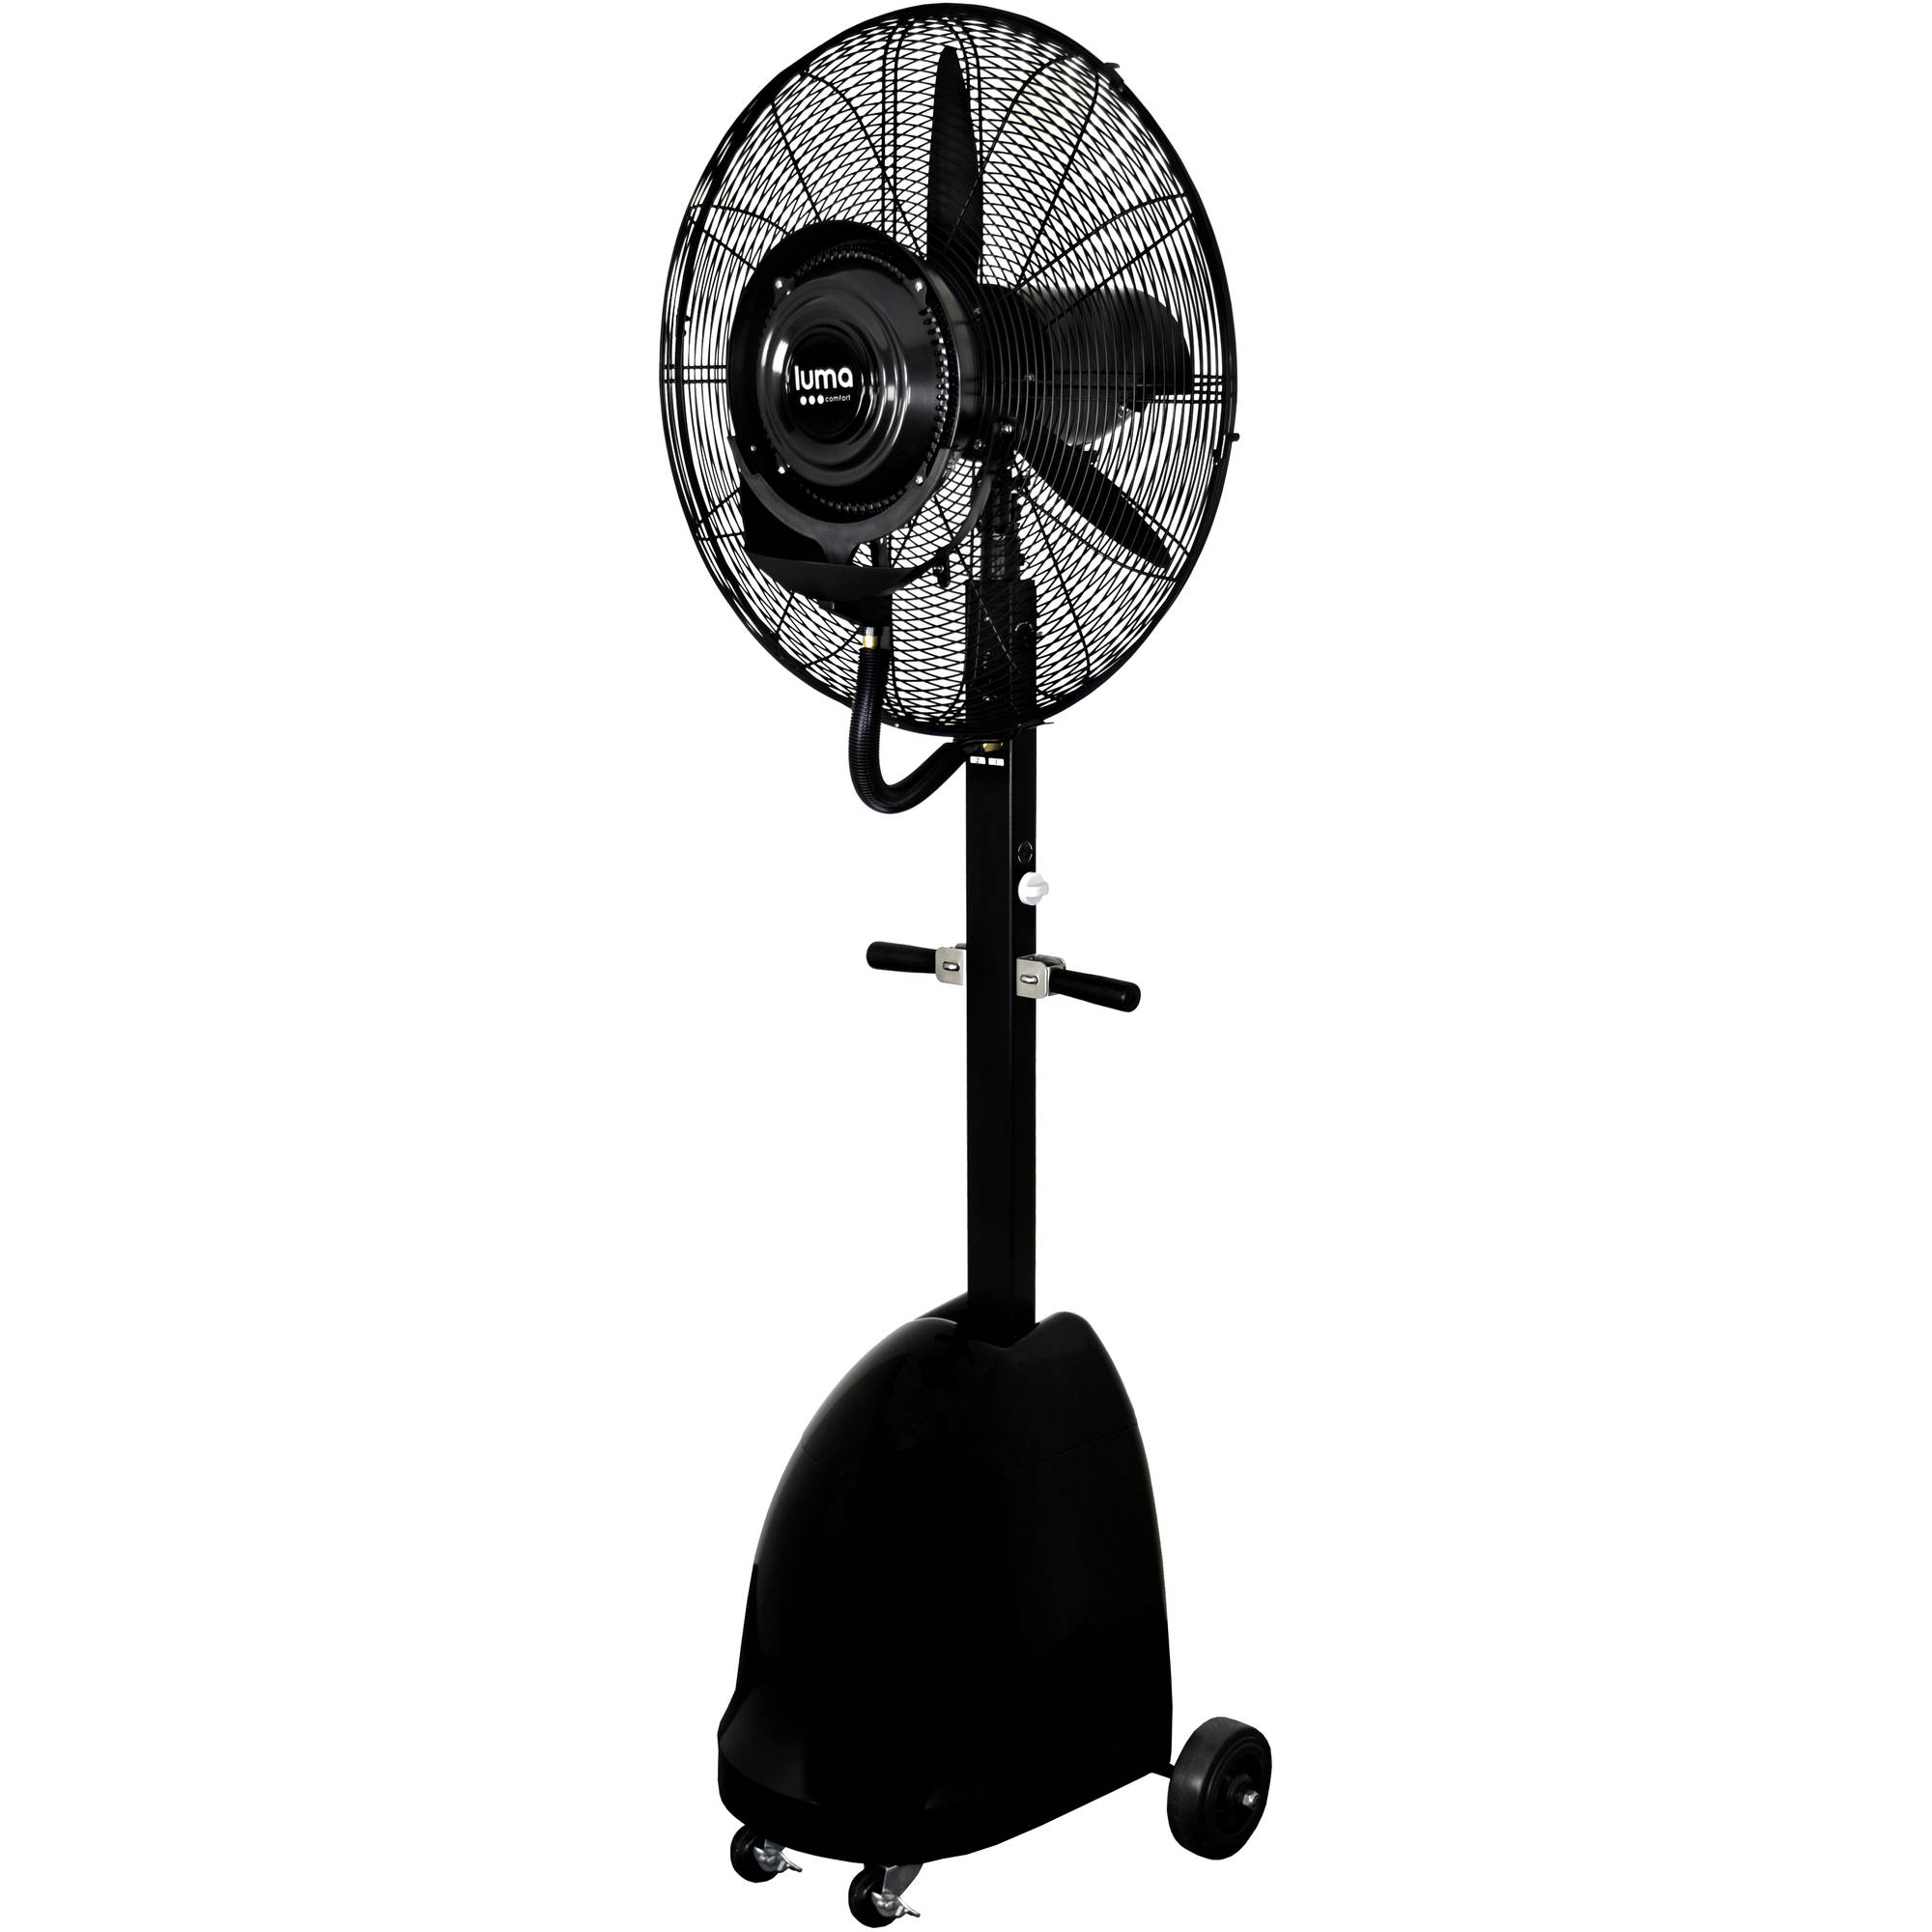 Commercial 26 Quot High Velocity Outdoor Misting Fan Black